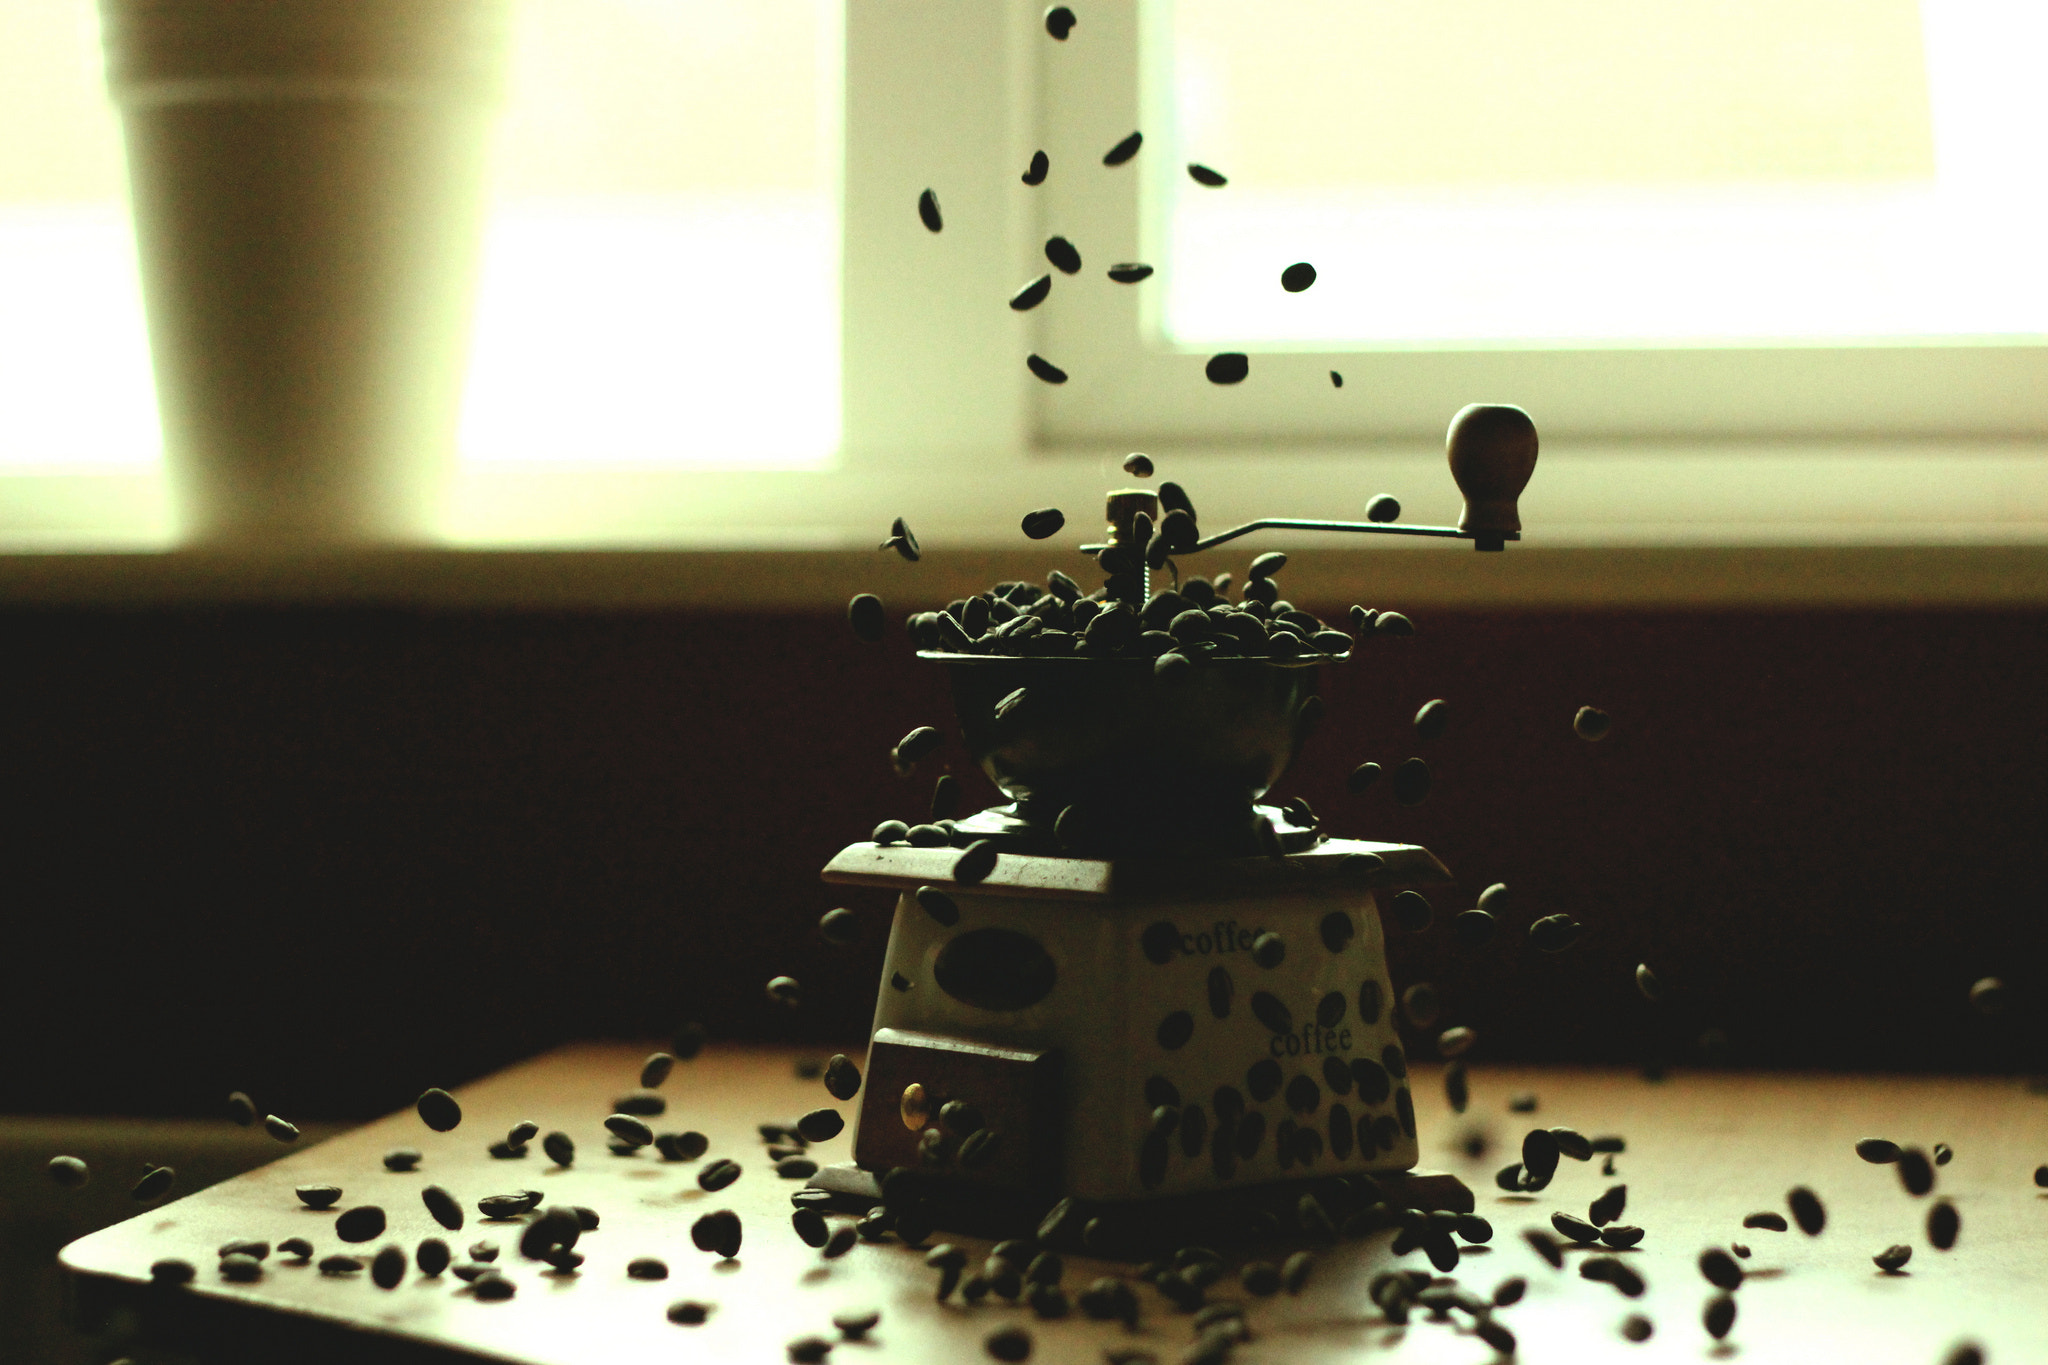 Photograph Escaping the grinder by Cristian  Varvari on 500px